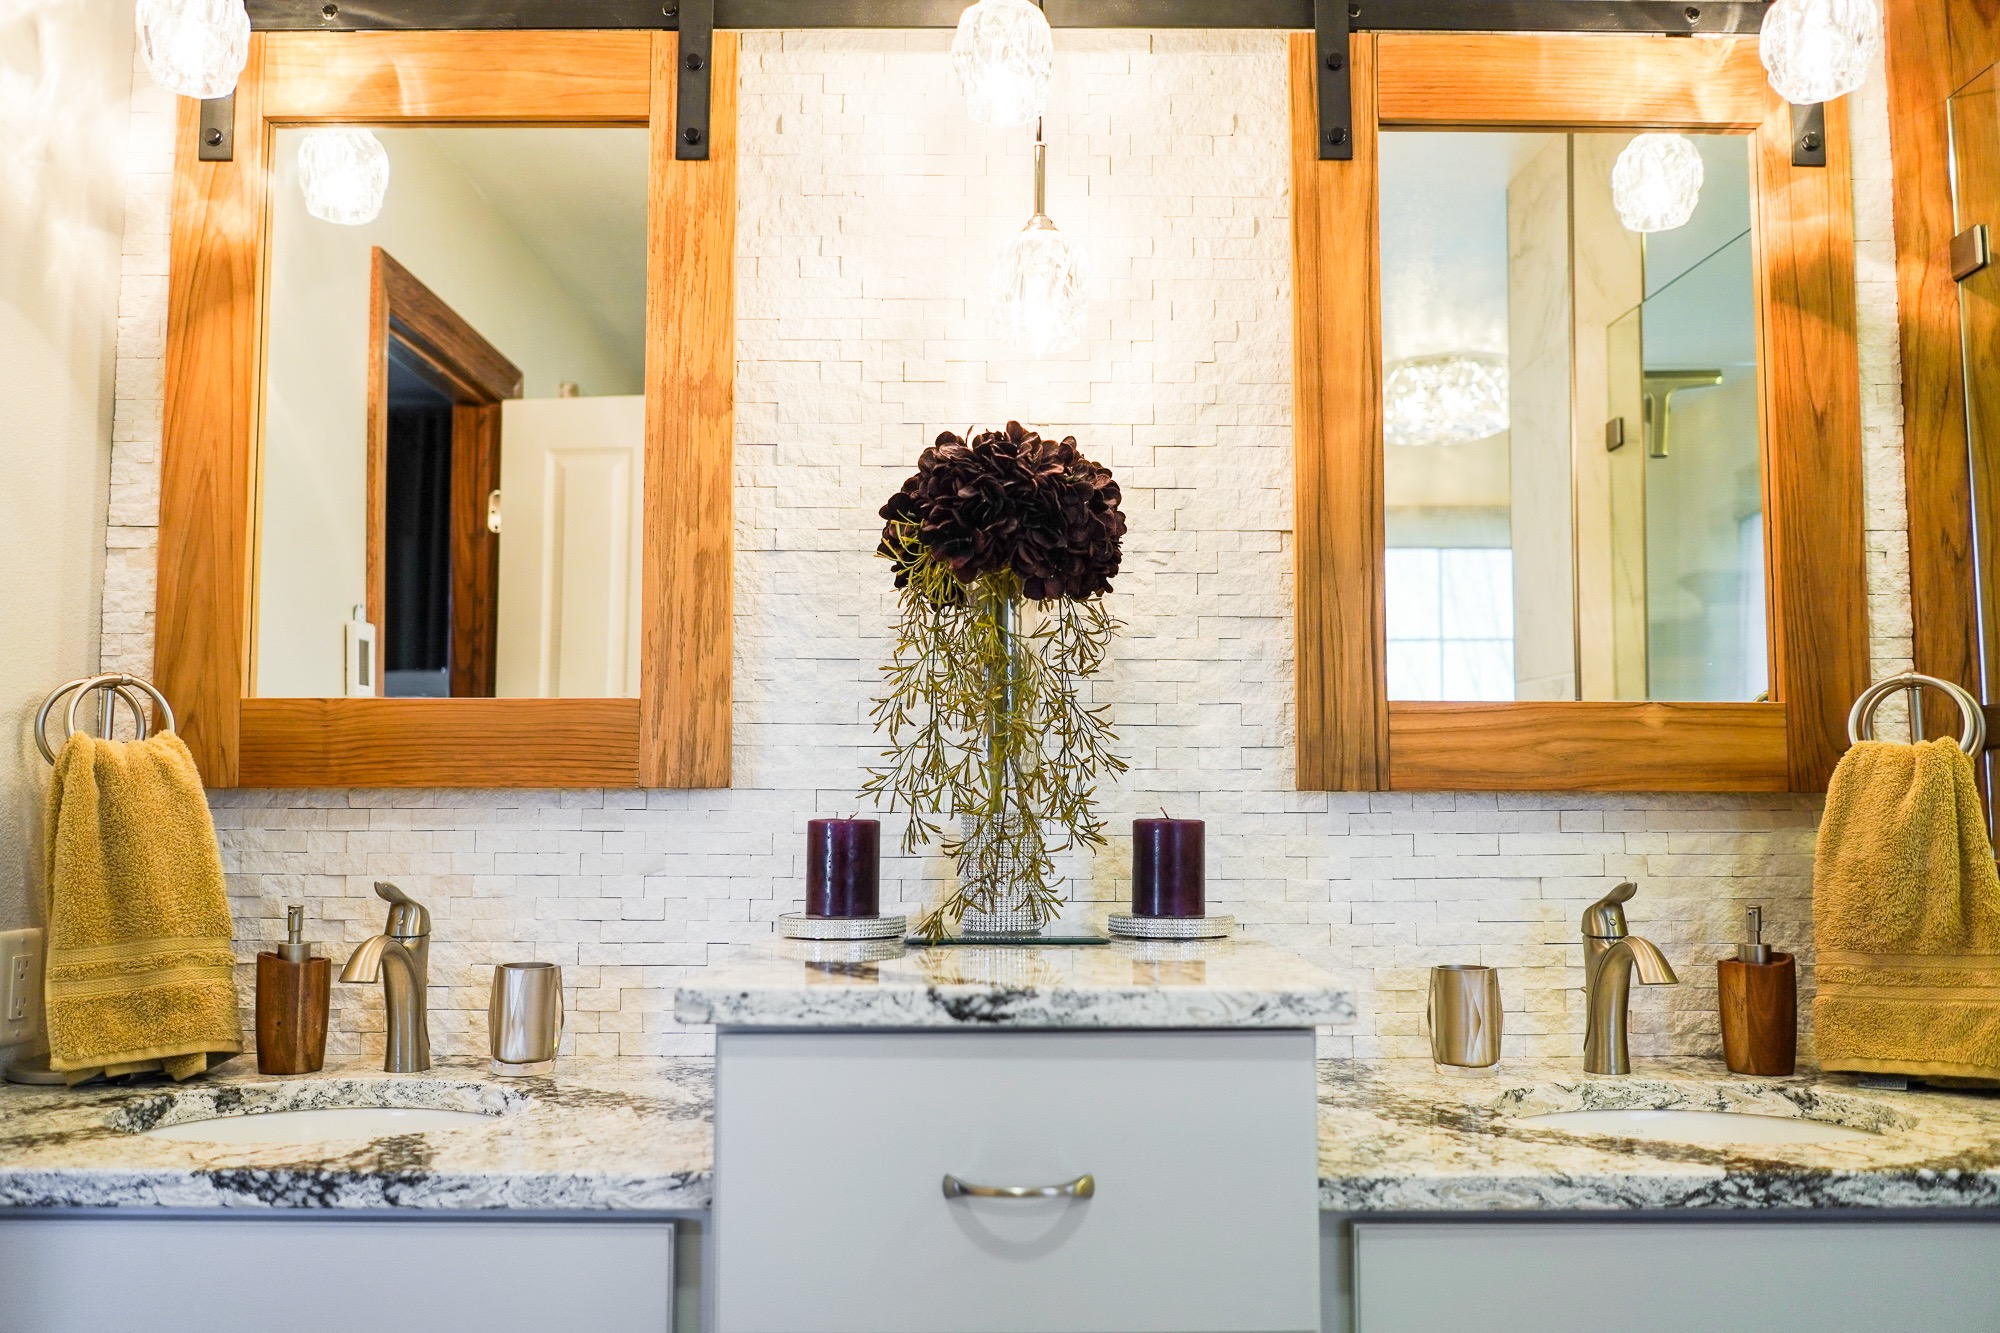 Teakwood Getaway - A warmth of rich color with Teakwood made this bathroom feel like you walked into an exotic getaway…